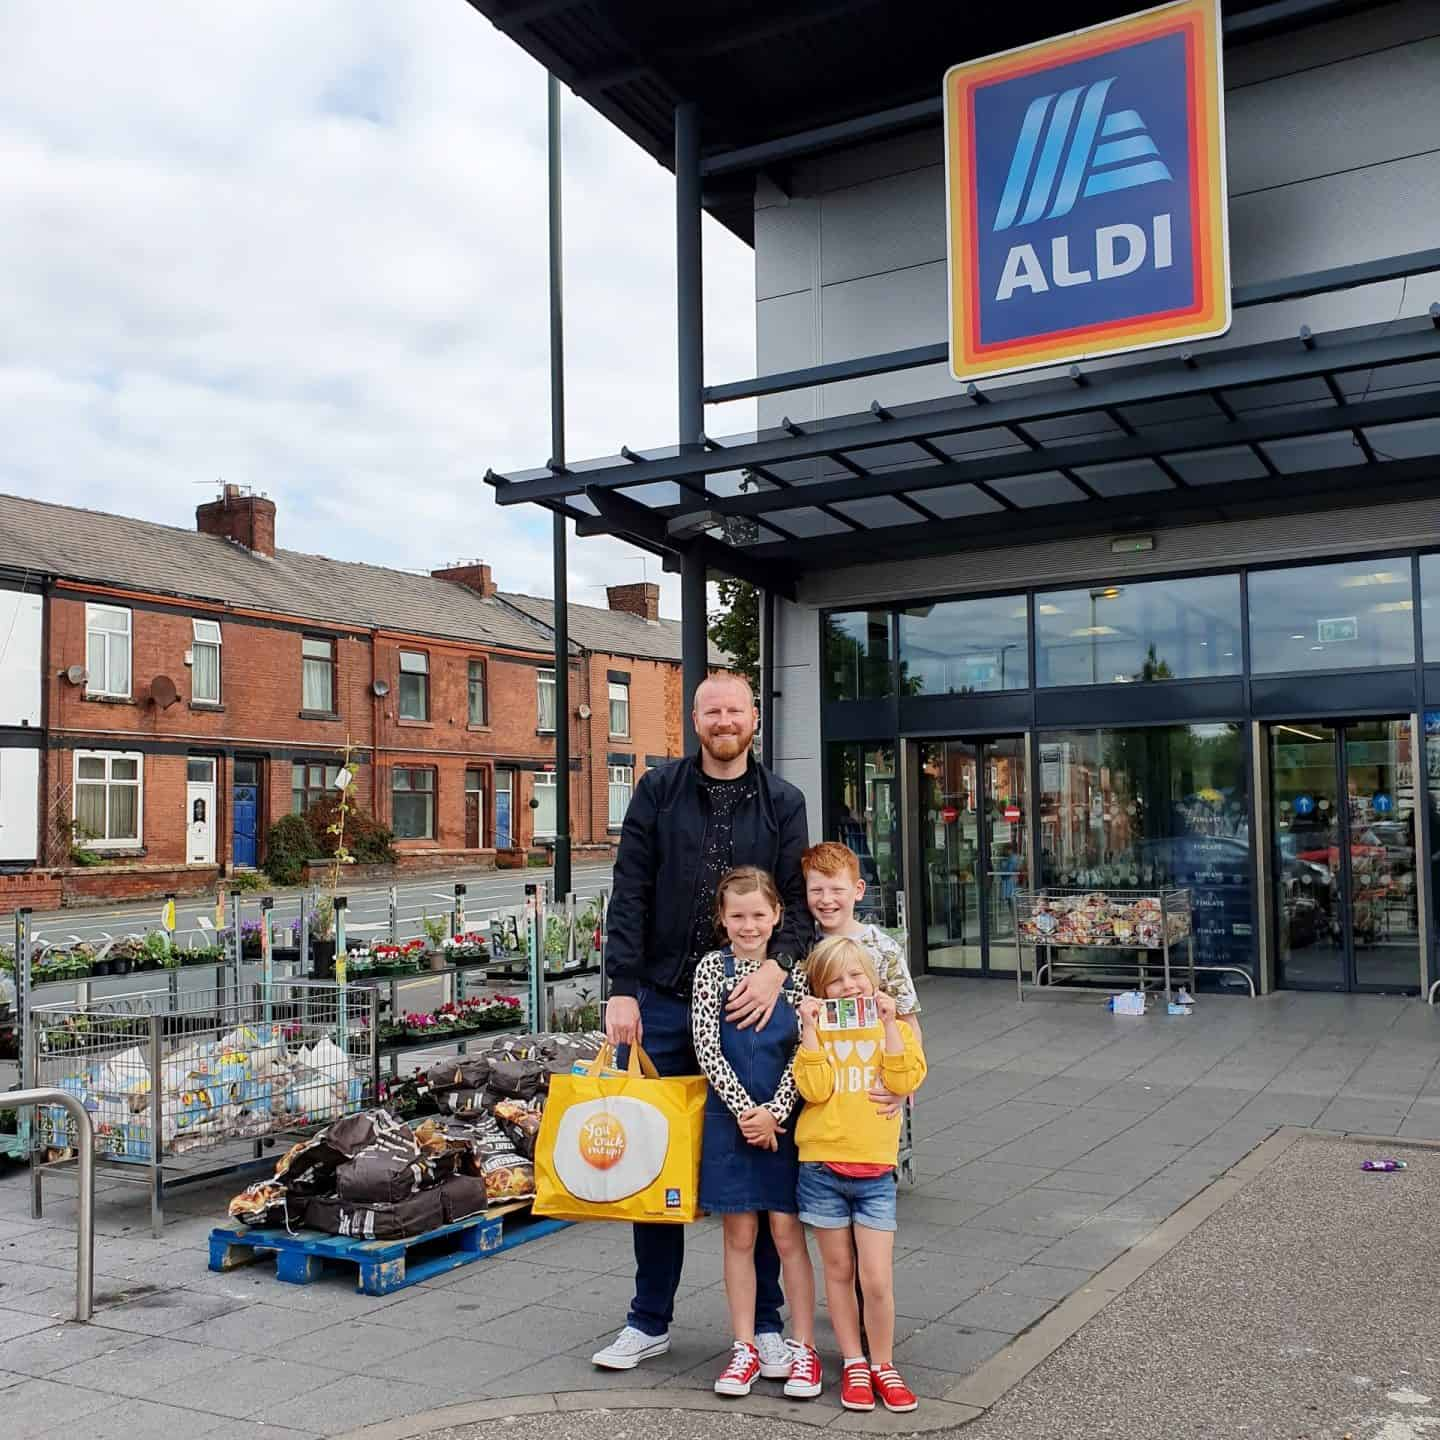 Dad and children outside ALDI with shopping bag